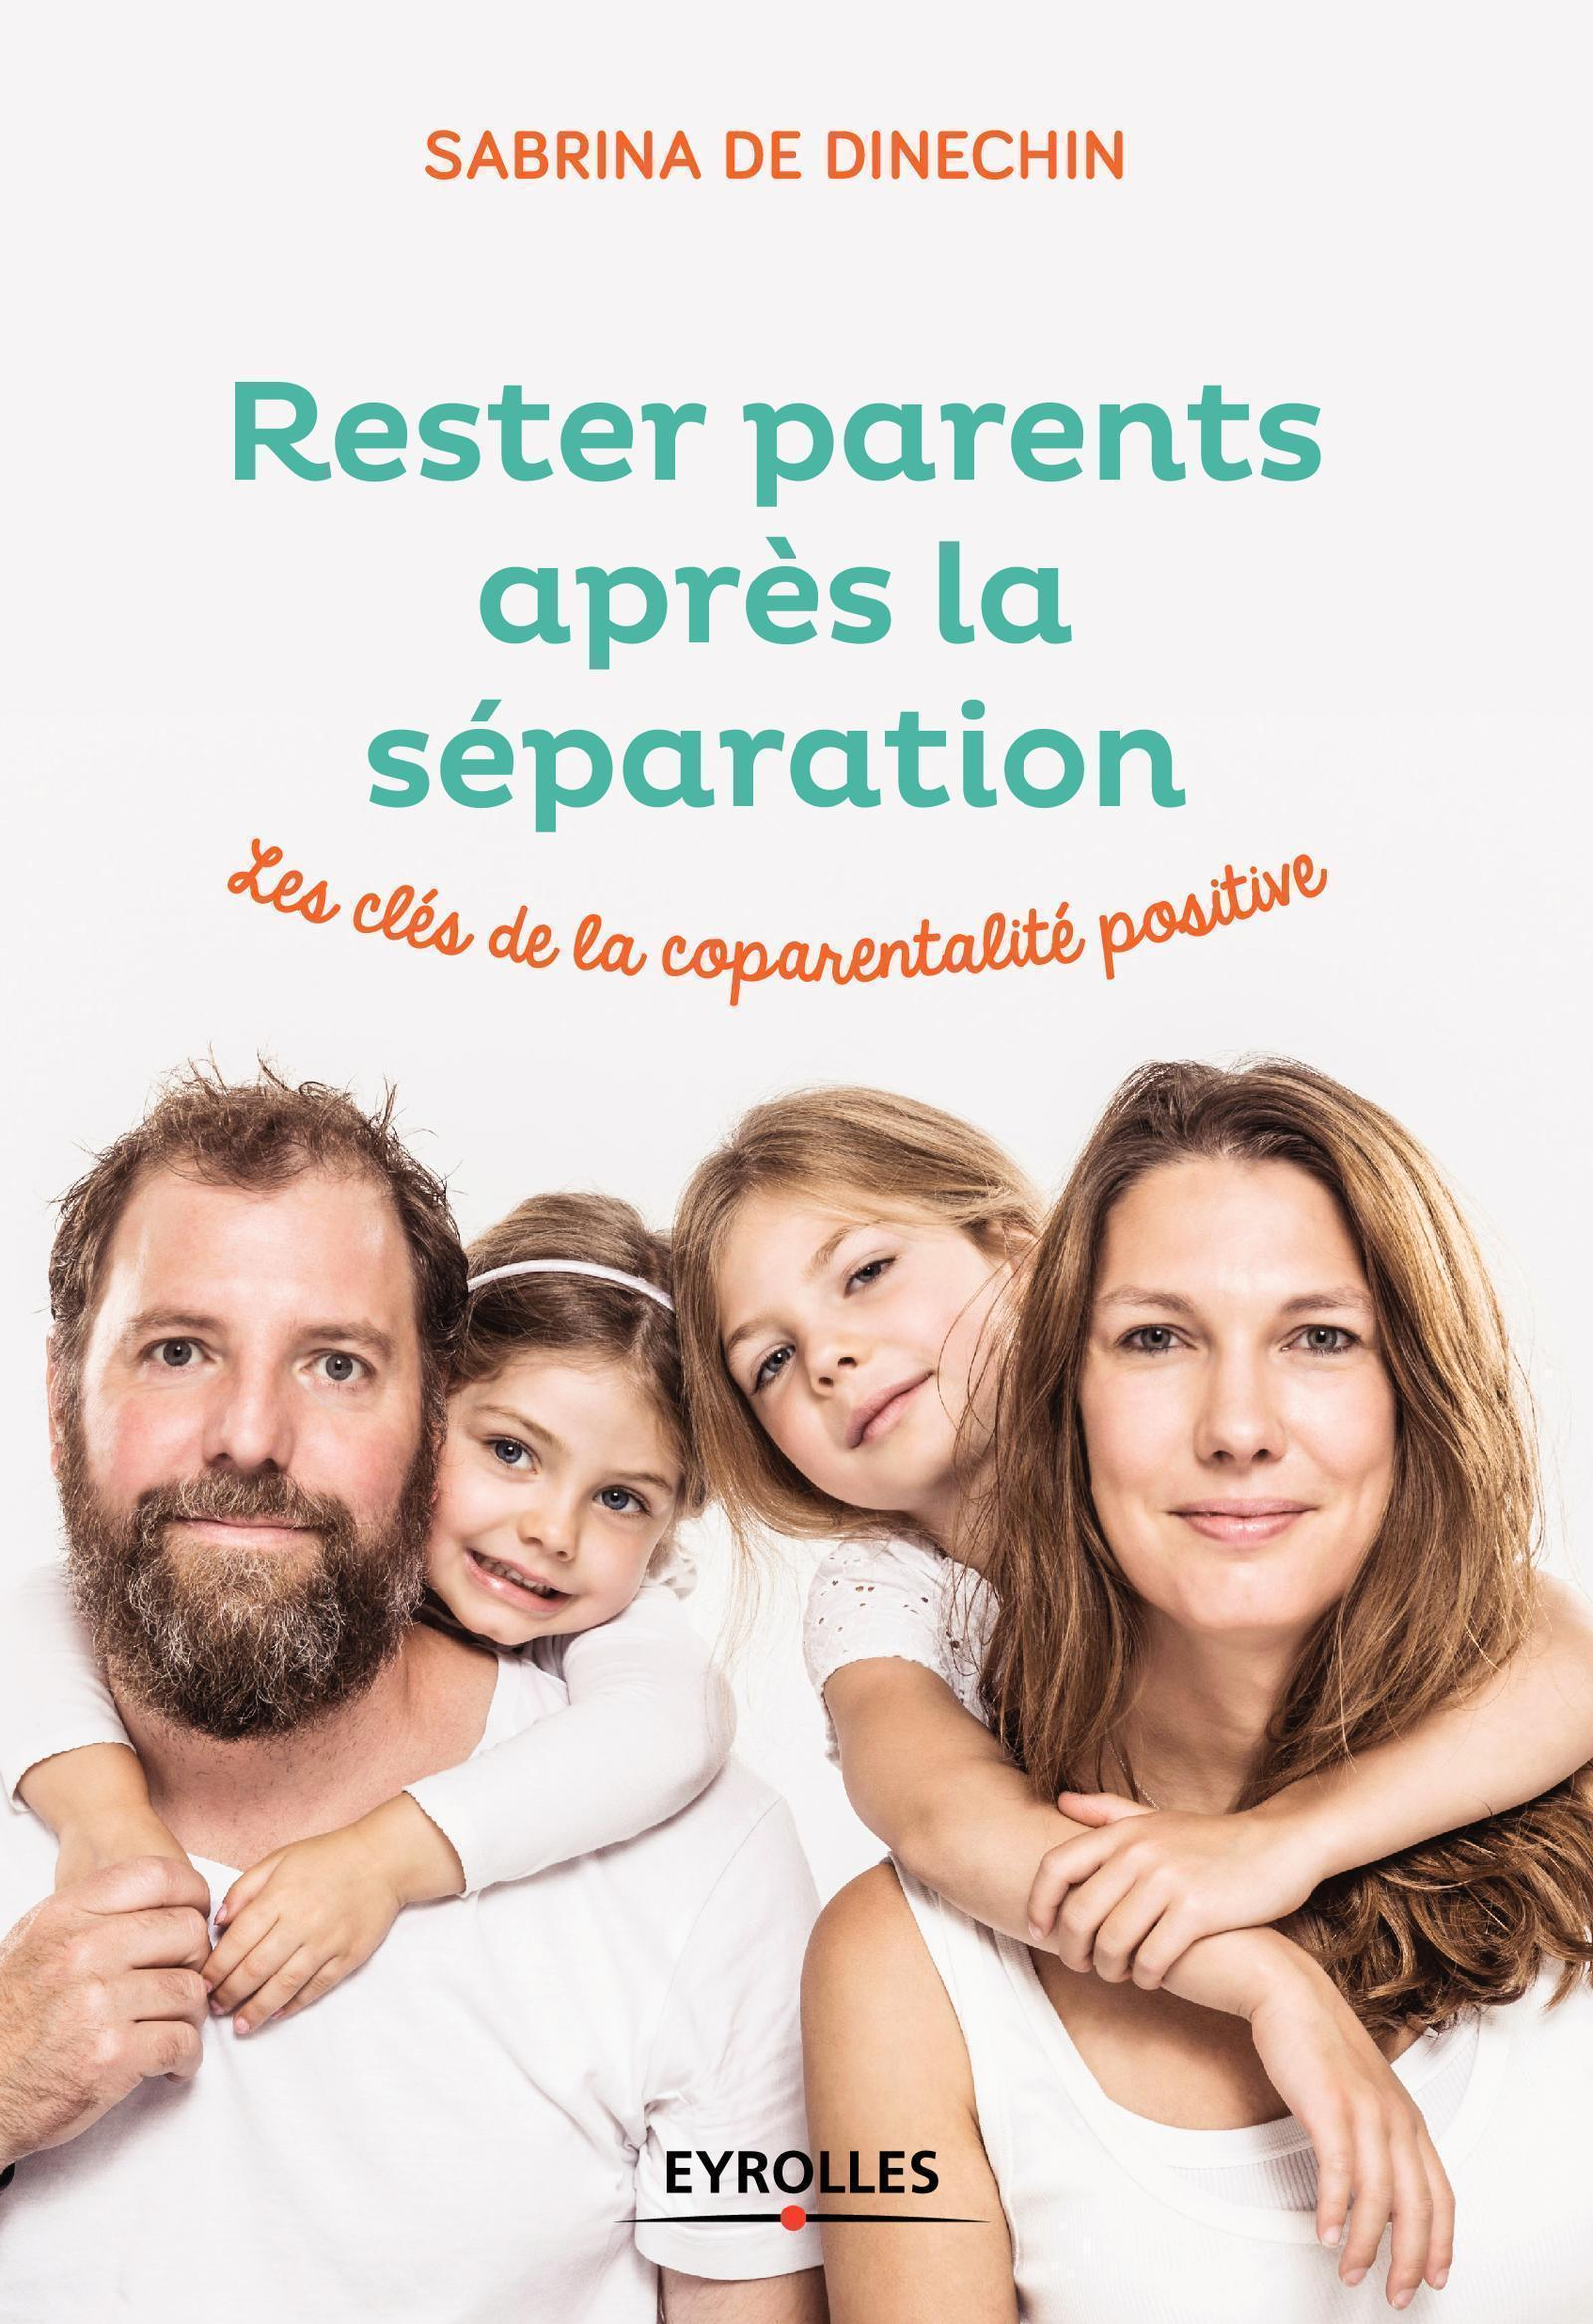 RESTER PARENTS APRES LA SEPARATION